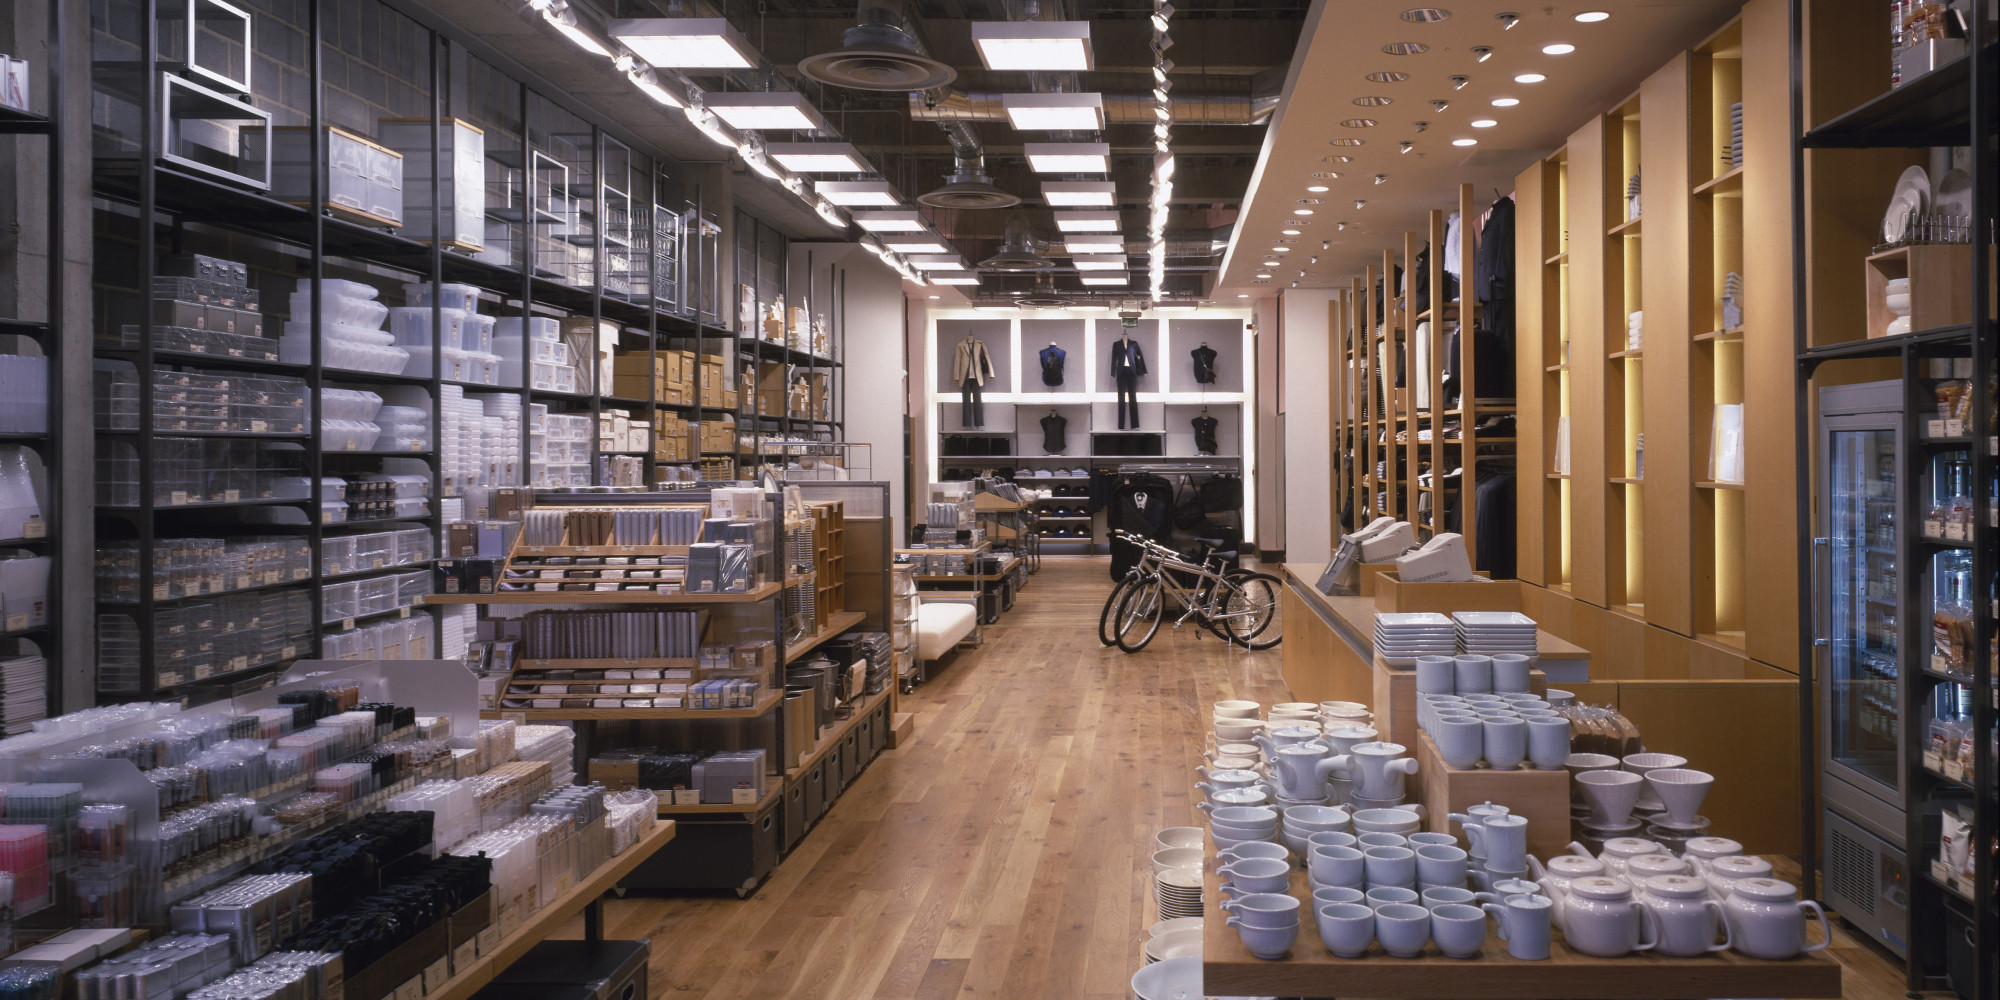 muji japanese no brand 39 retailer to set up shop across canada report. Black Bedroom Furniture Sets. Home Design Ideas